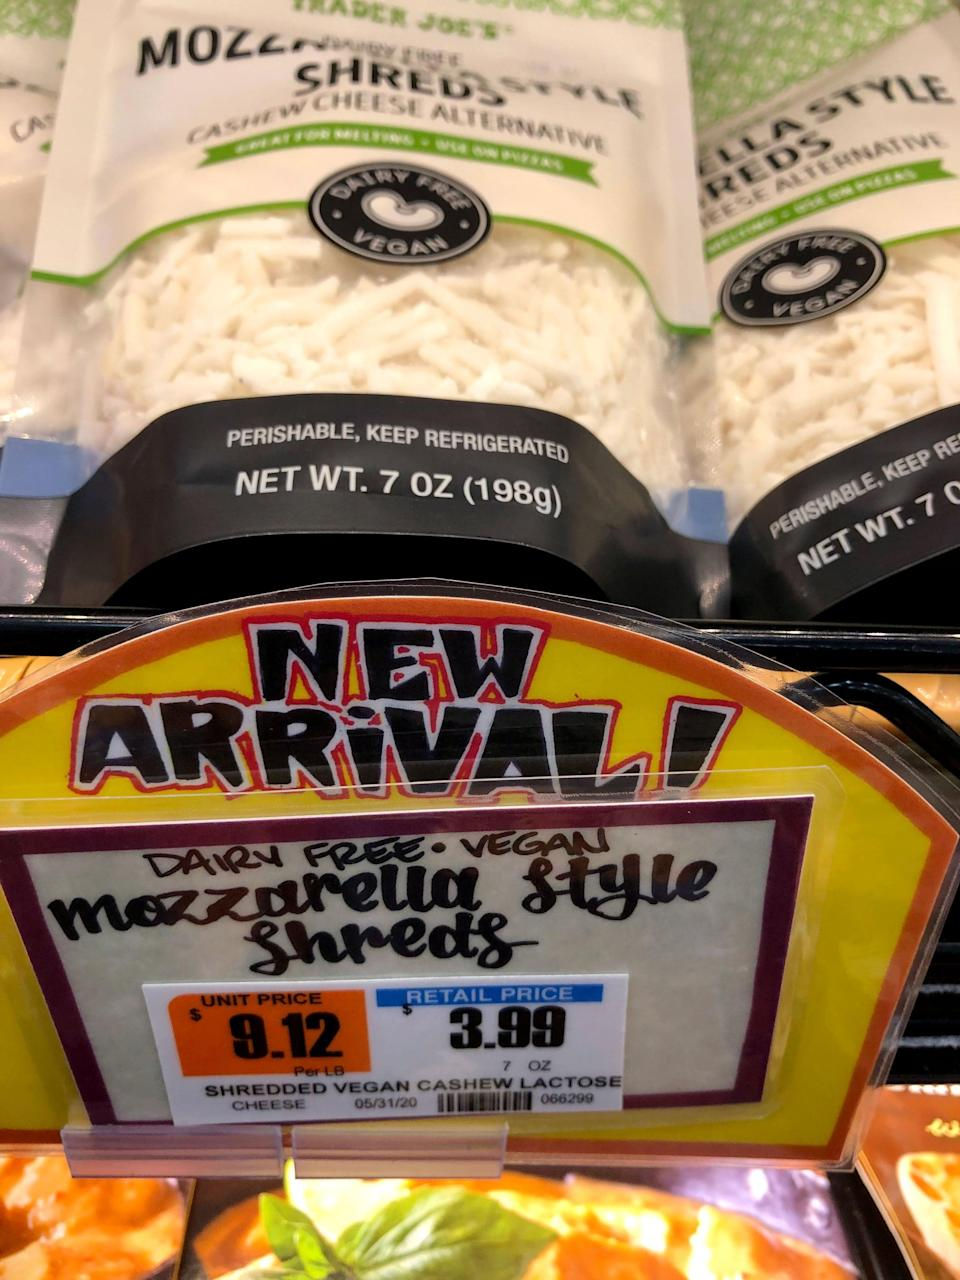 <p>For $4, a bag of this Trader Joe's Dairy Free Mozzarella Style Shreds is pretty reasonable. Other popular brands usually cost a little more, and this tastes and melts just as well!</p>